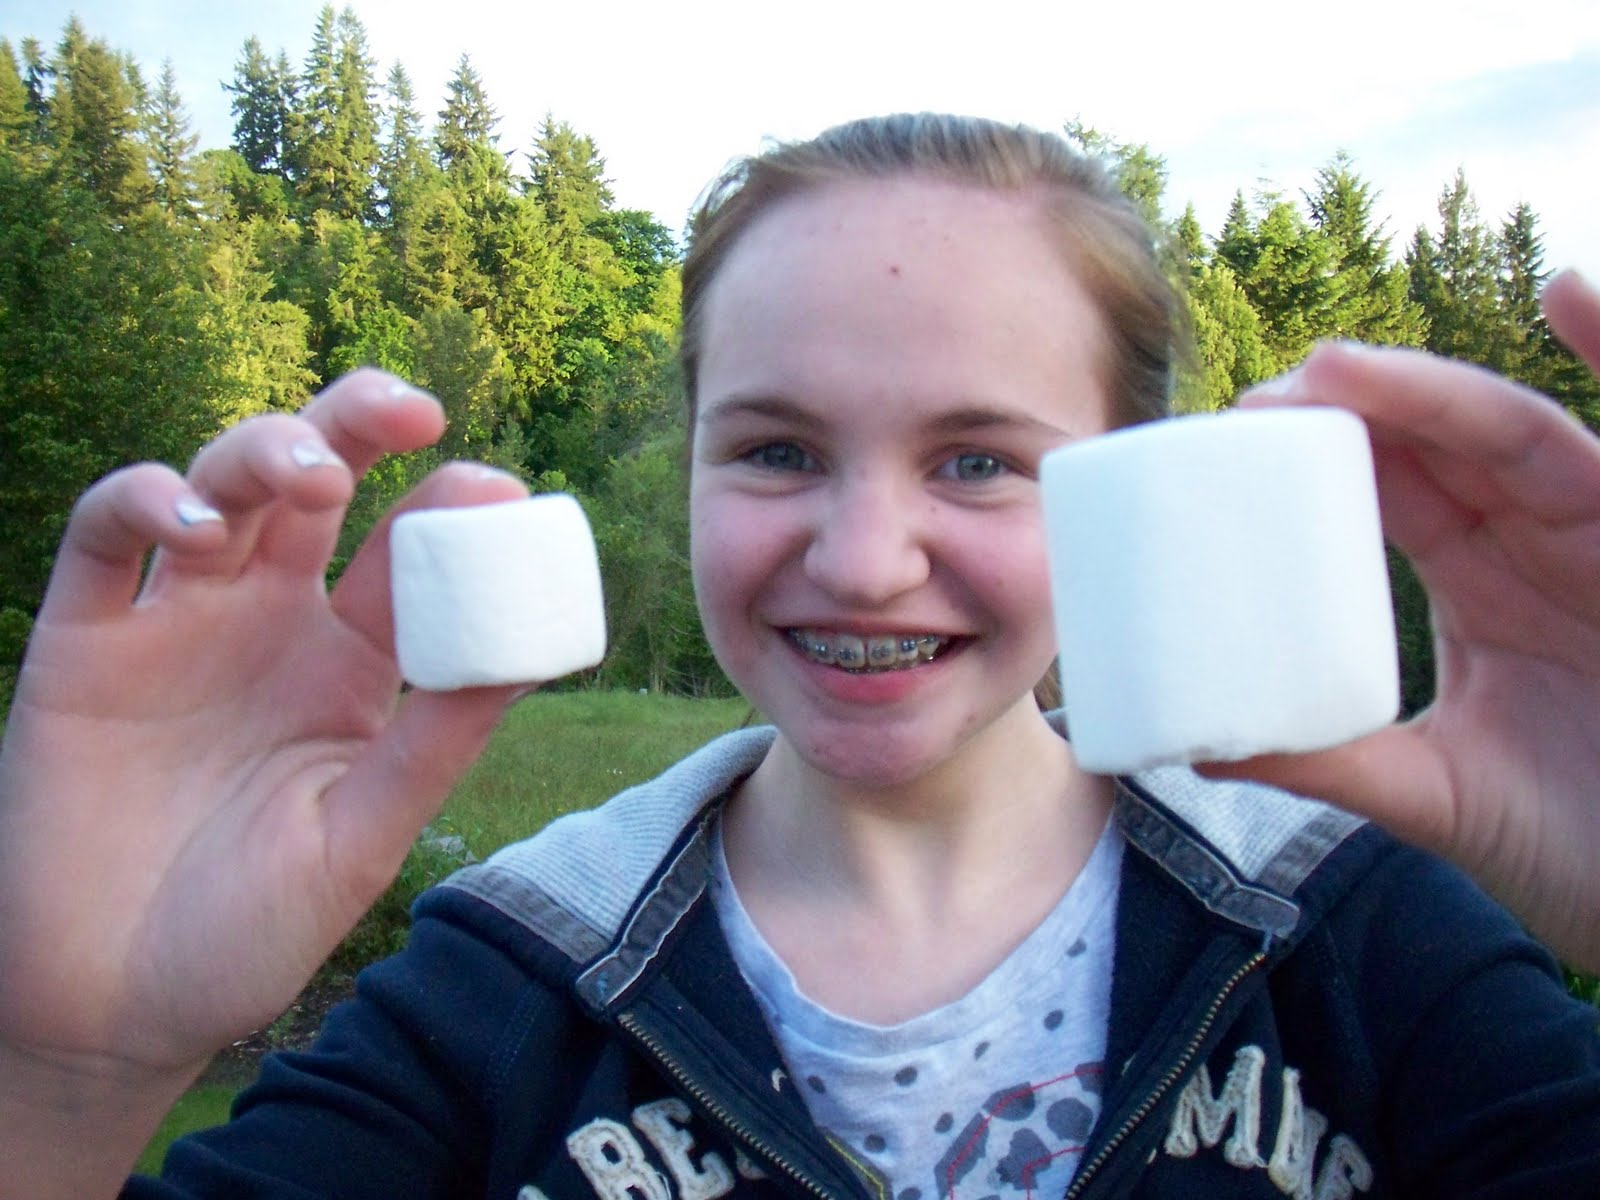 regular marshmallow vs giant marshmallow}